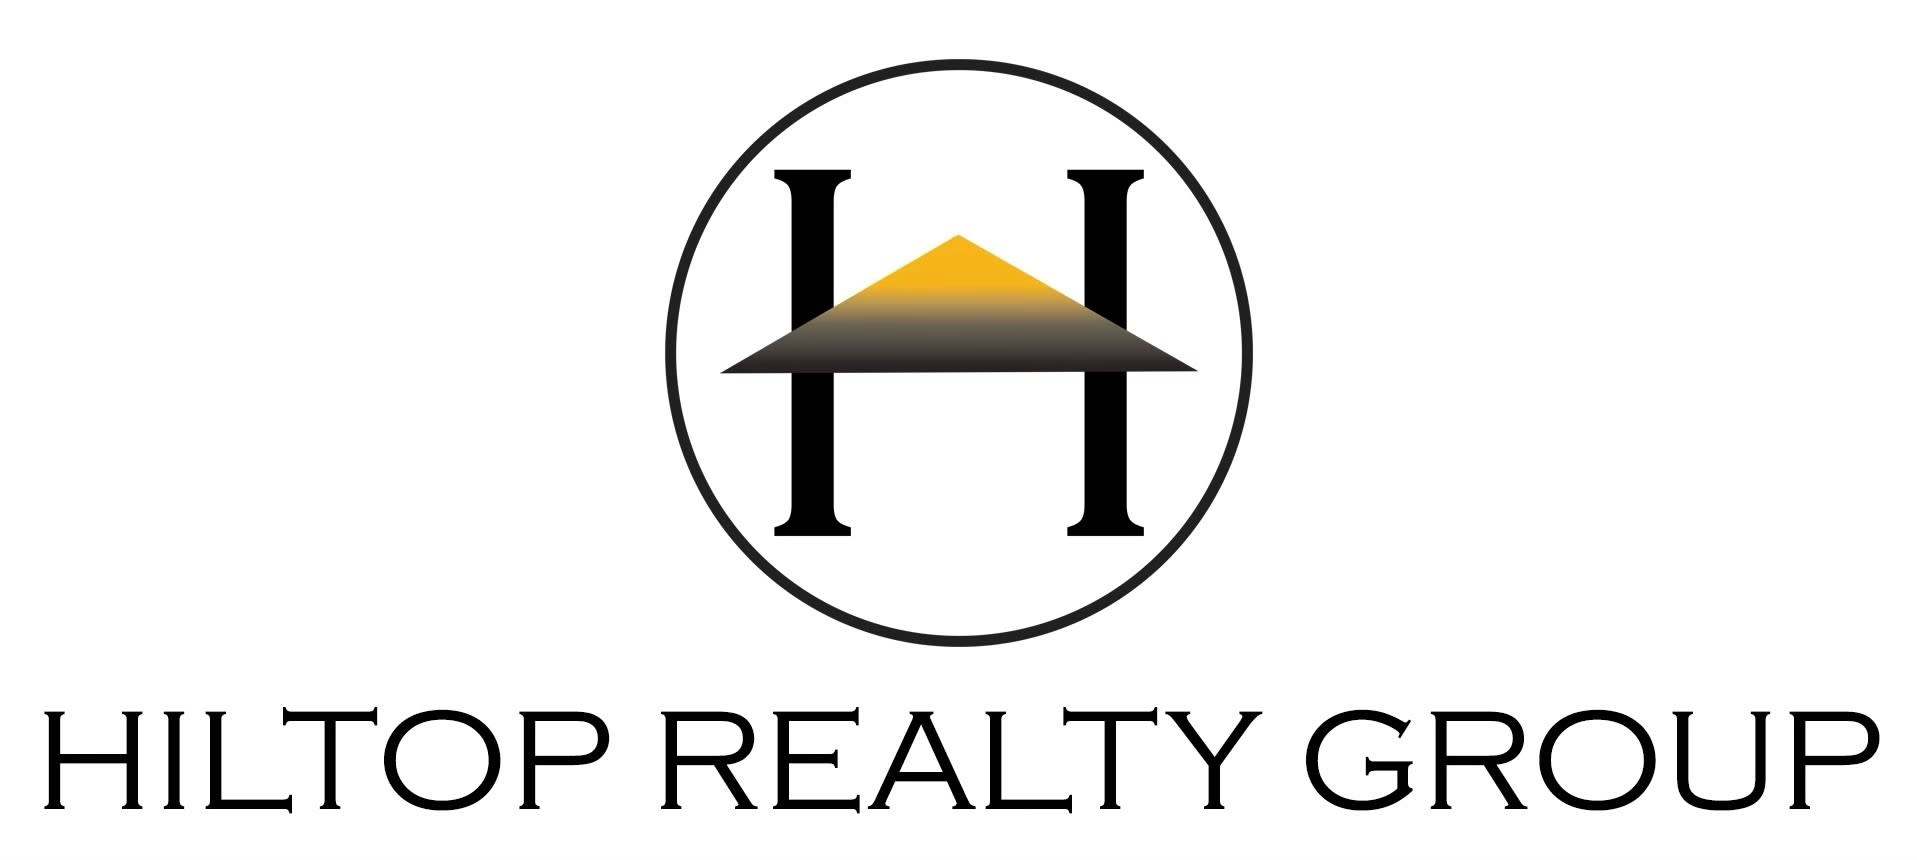 Hiltop Realty Group